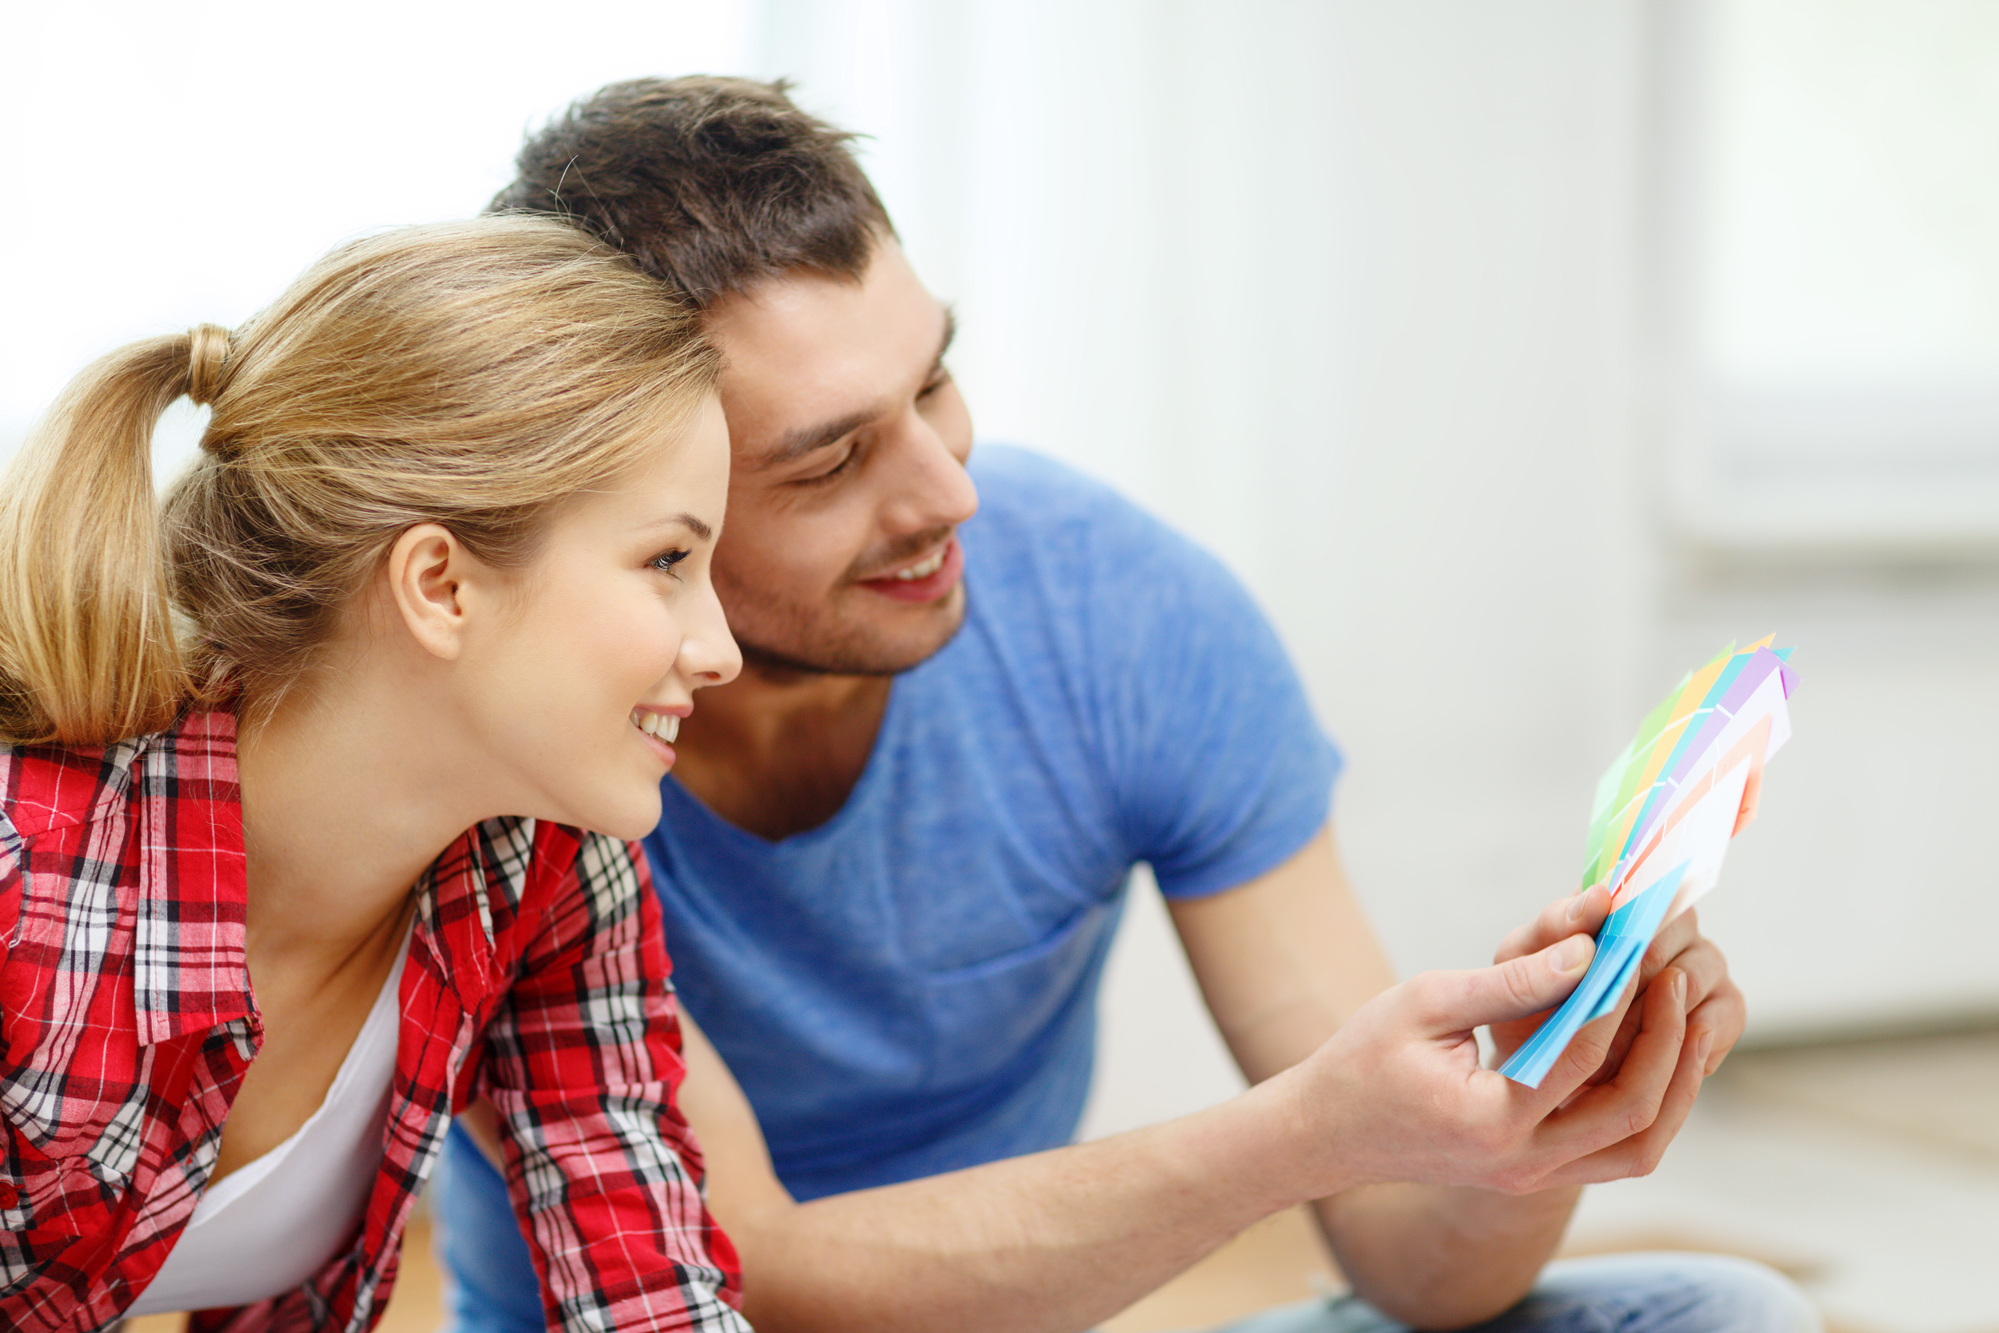 Smiling Couple Looking At Color Samples At Home